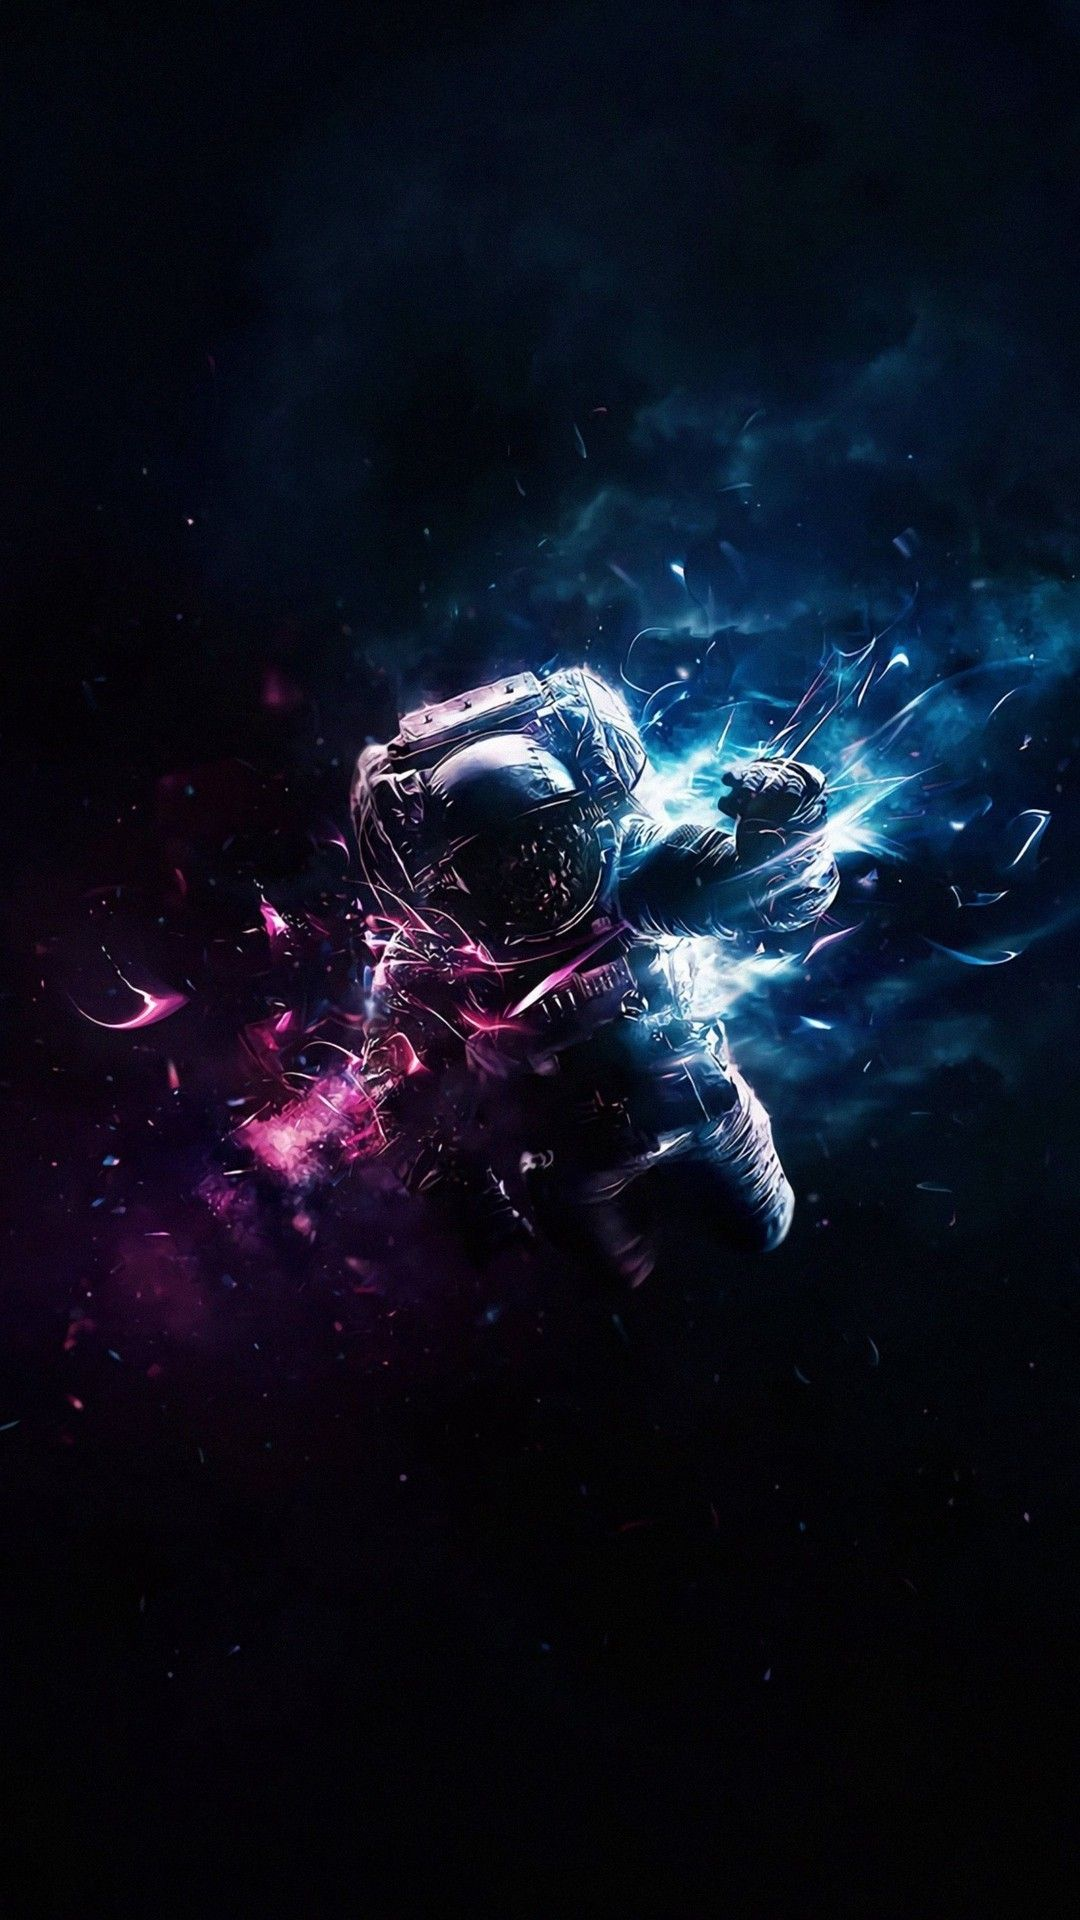 Pin By Torria On Wallpaper Space Artwork Astronaut Wallpaper Space Art